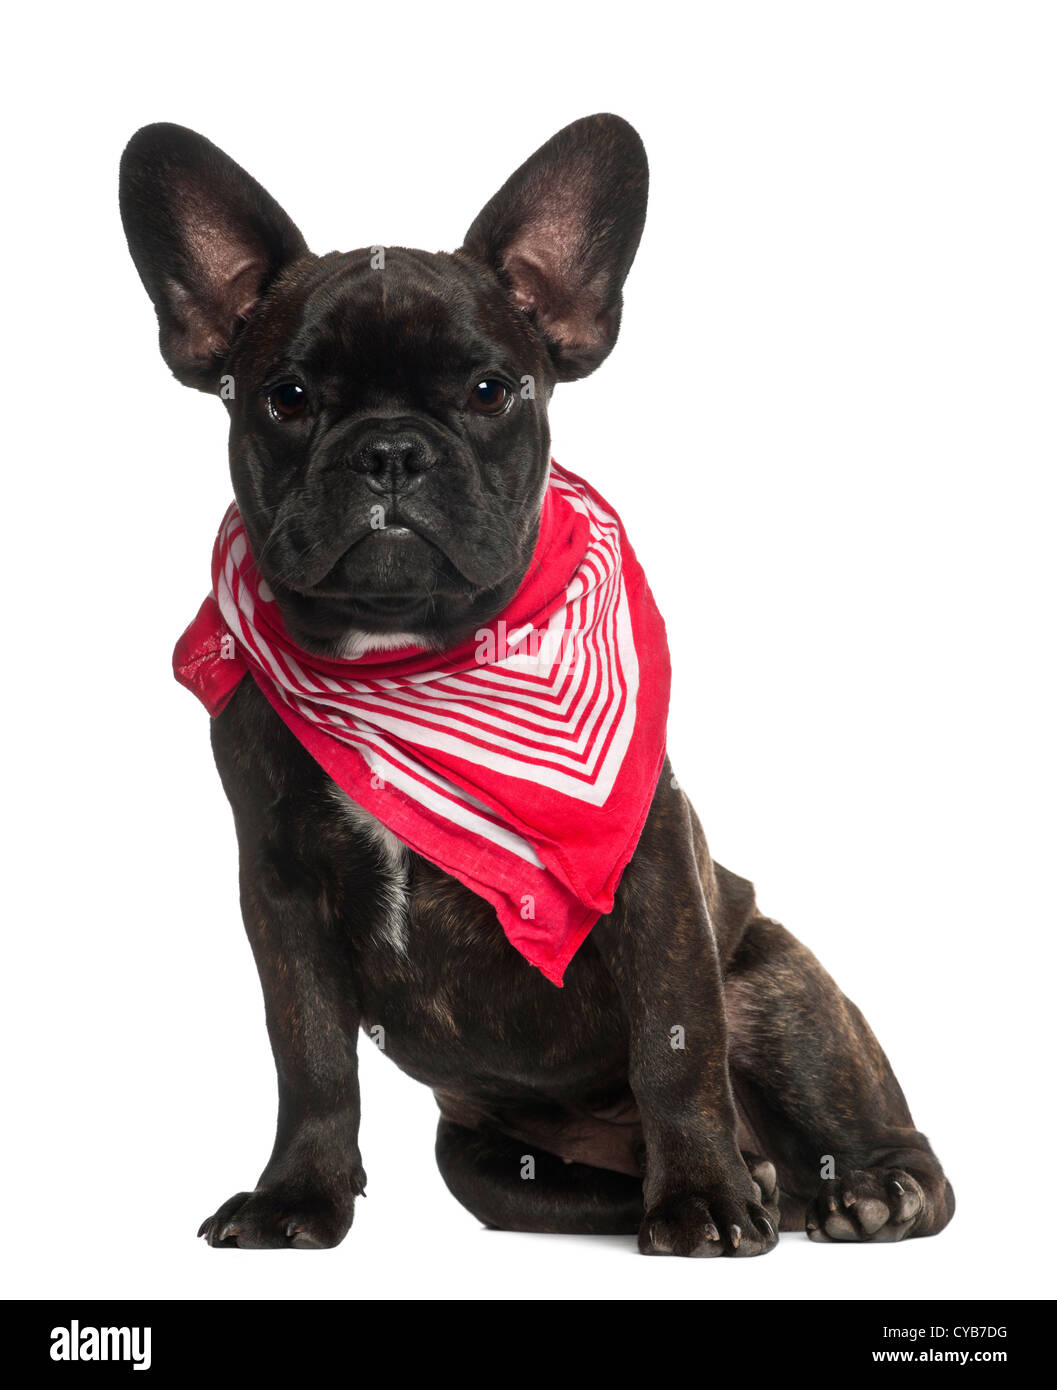 French Bulldog puppy, 6 months old, wearing neckerchief sitting against white background - Stock Image